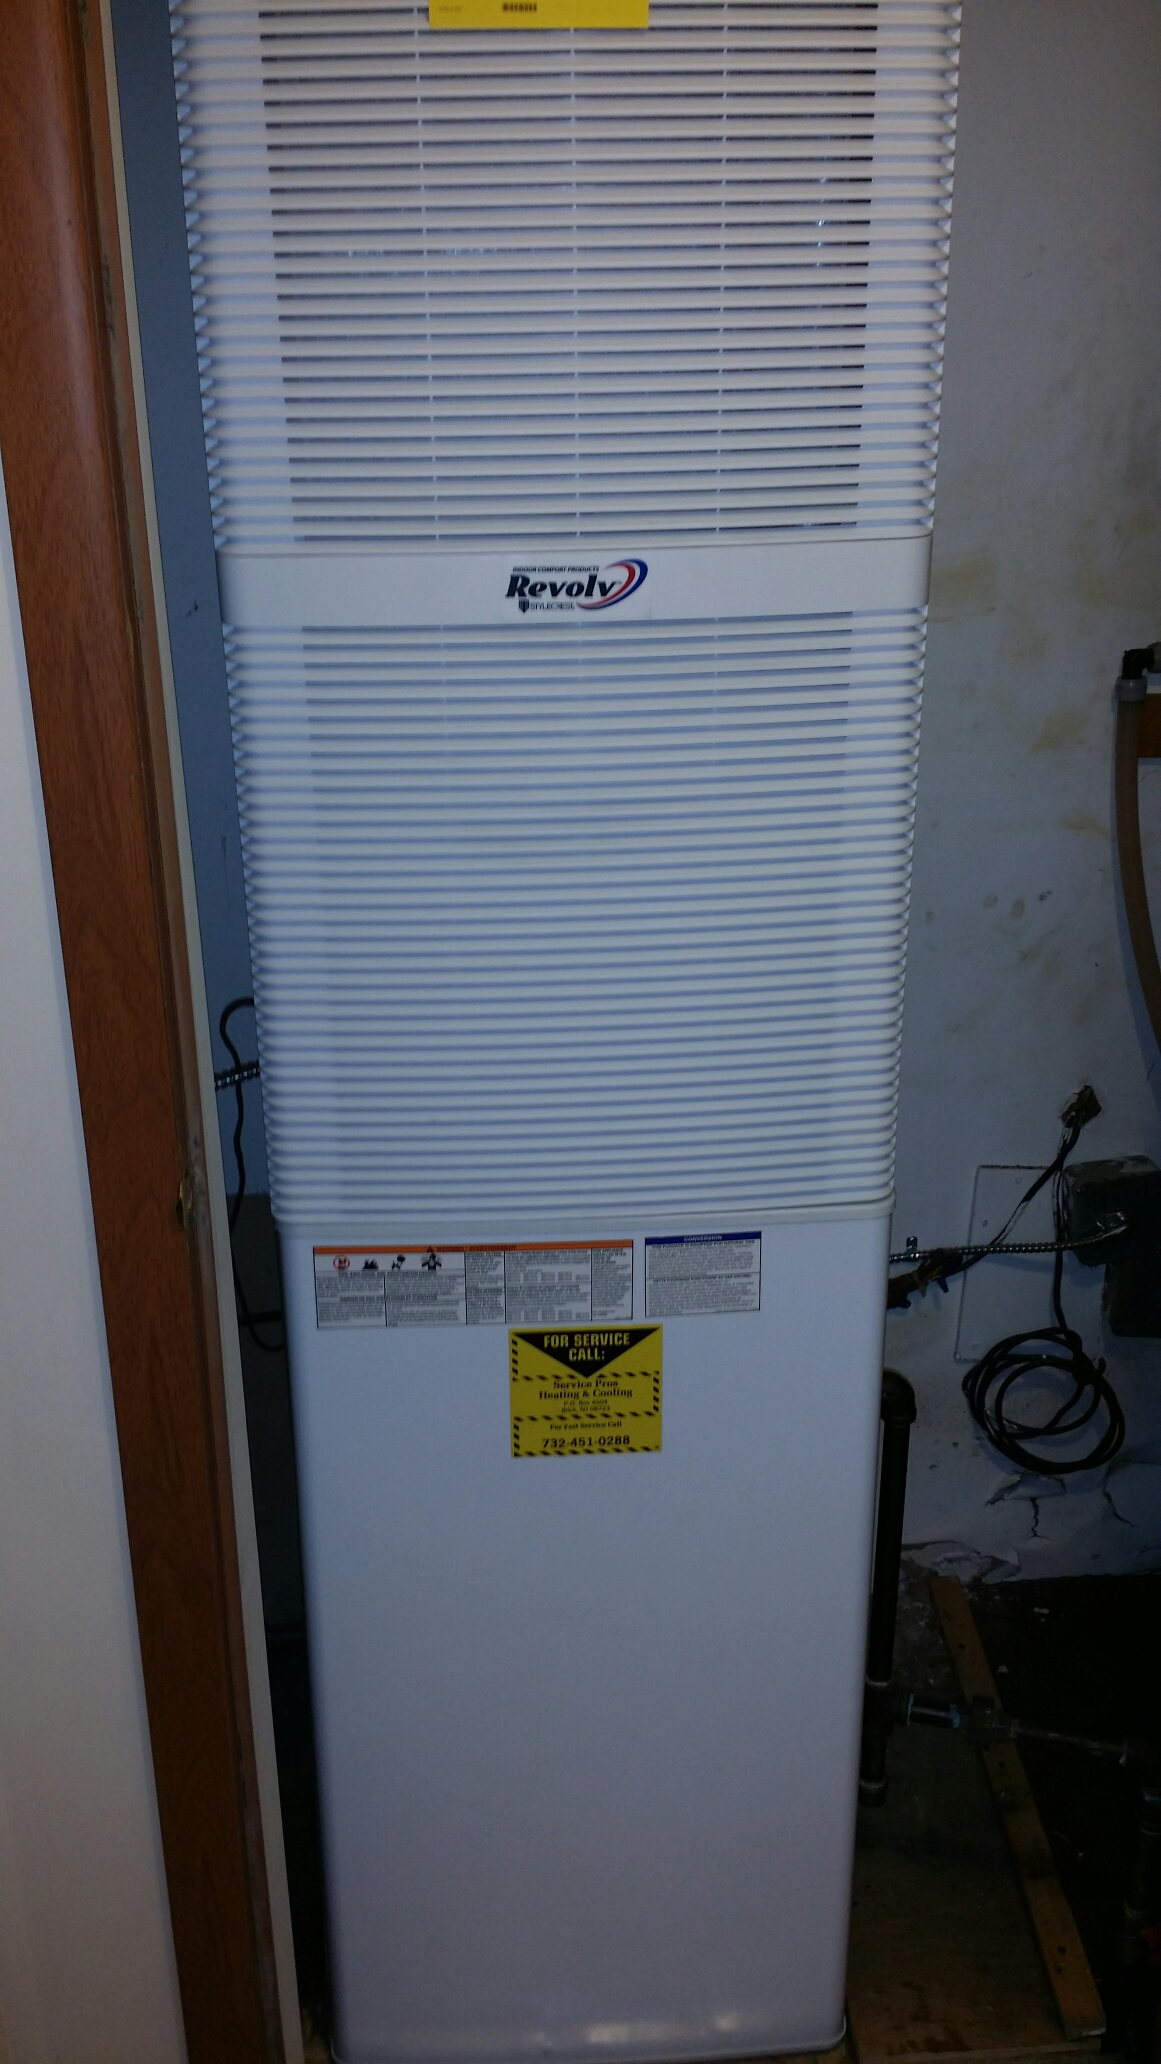 Freehold, NJ - Gas furnace install. Install mobile home gas furnace 70,000 btu Coleman / Revol